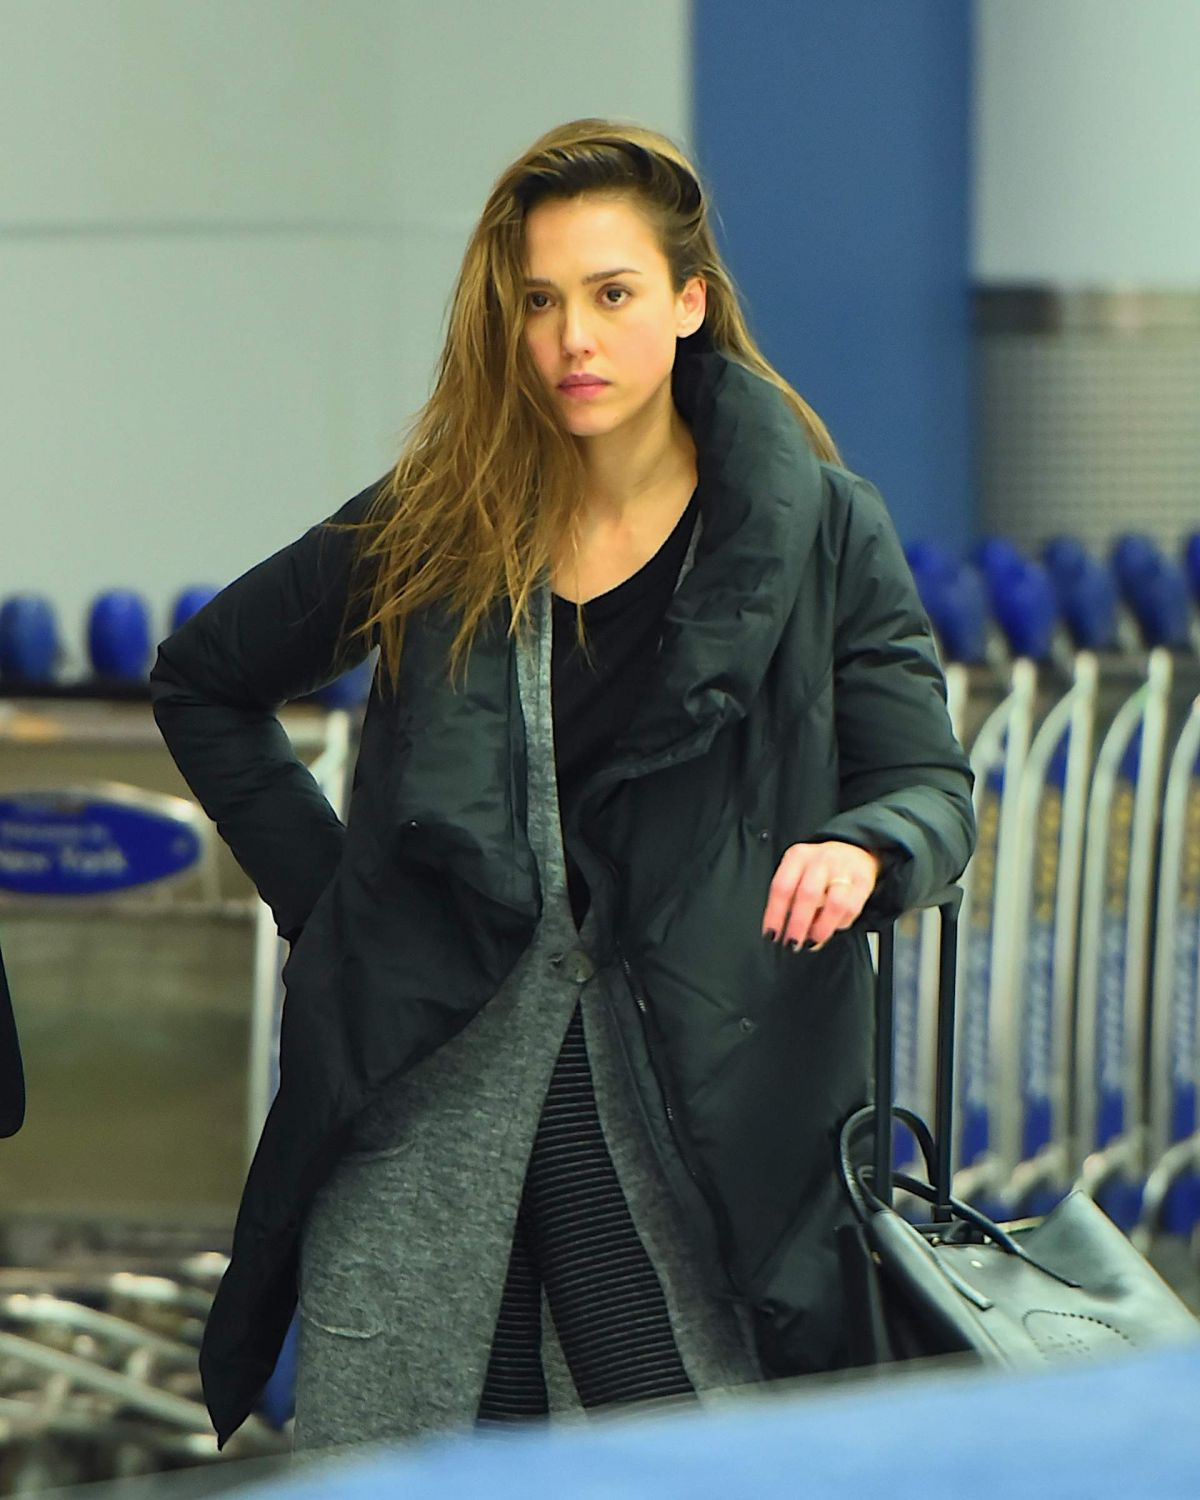 http://www.hawtcelebs.com/wp-content/uploads/2017/01/jessica-alba-at-jfk-airport-in-new-york-01-22-2017_5.jpg